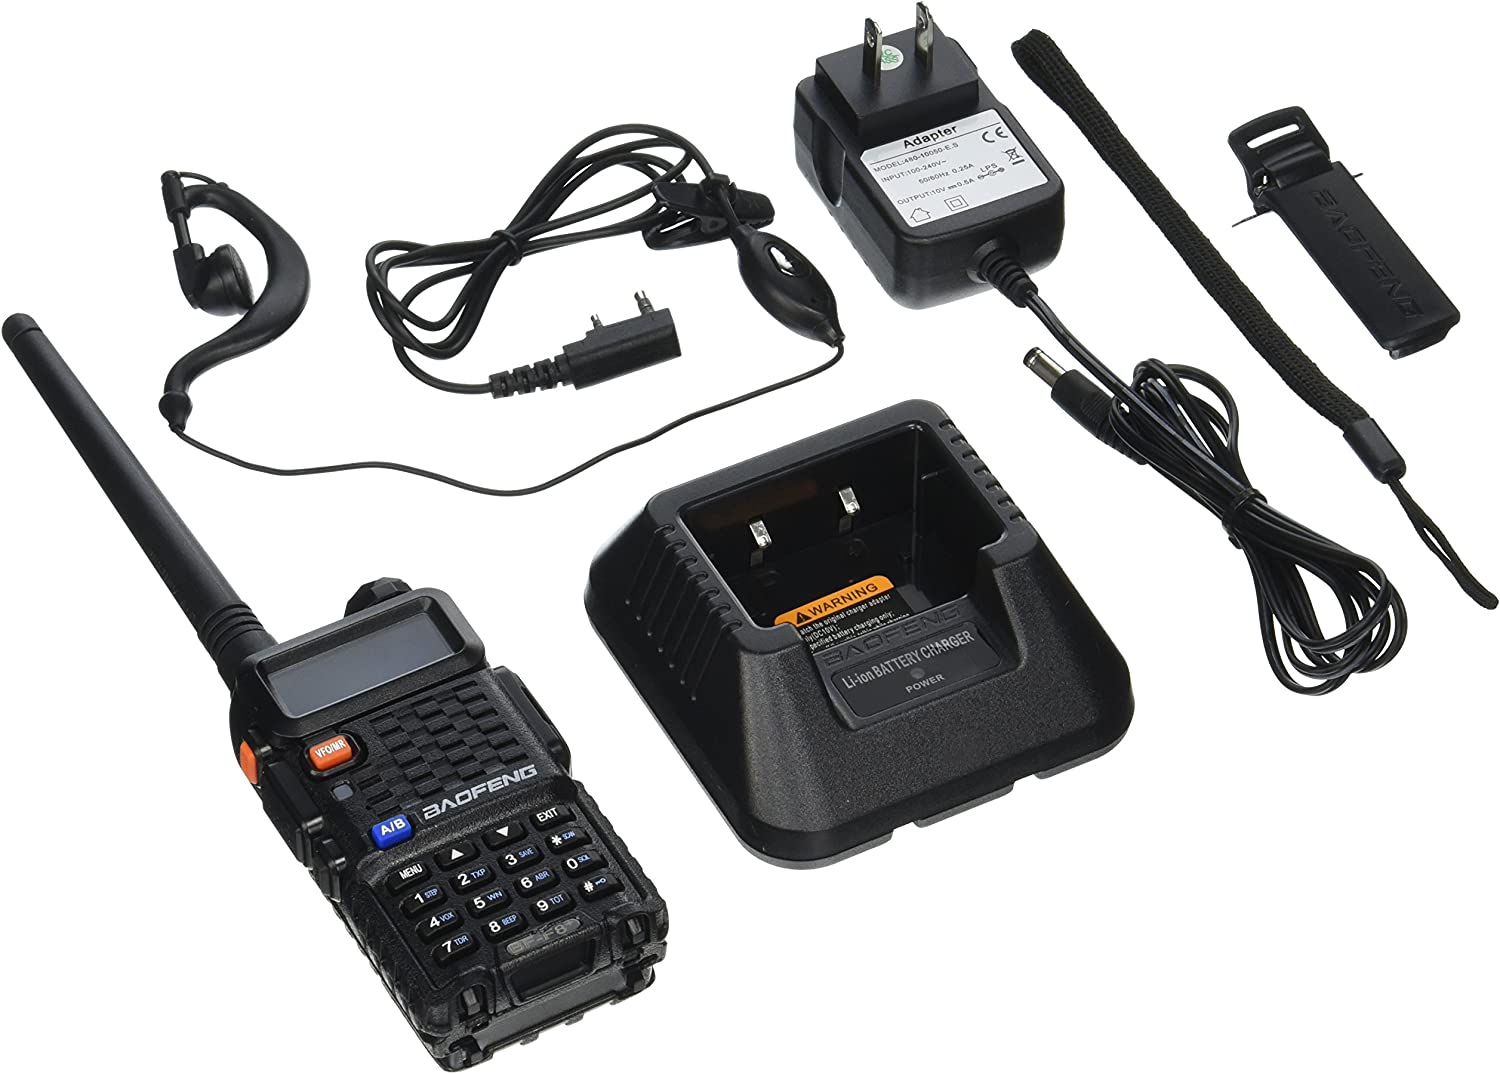 BaoFeng BF-F8 Upgraded Version of UV-5R Dual-Band 136-174 400-520 MHz FM Ham Two-Way Radio Transceiver